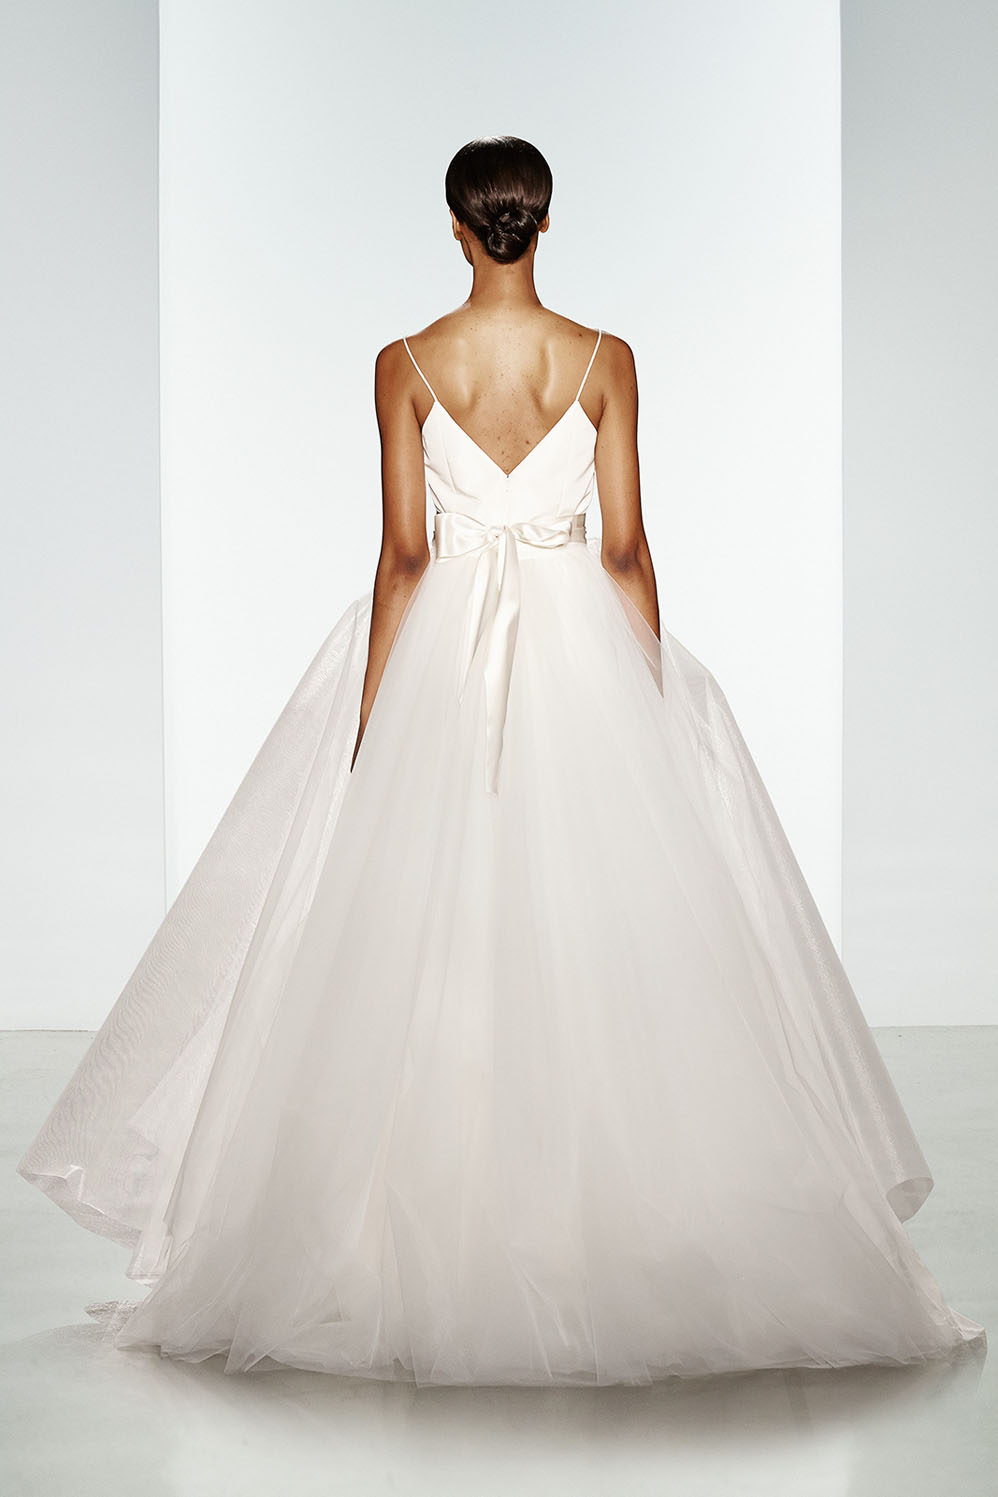 spagetti-strap-bridal-gown-tulle-overskirt-amsale-darcy.jpg